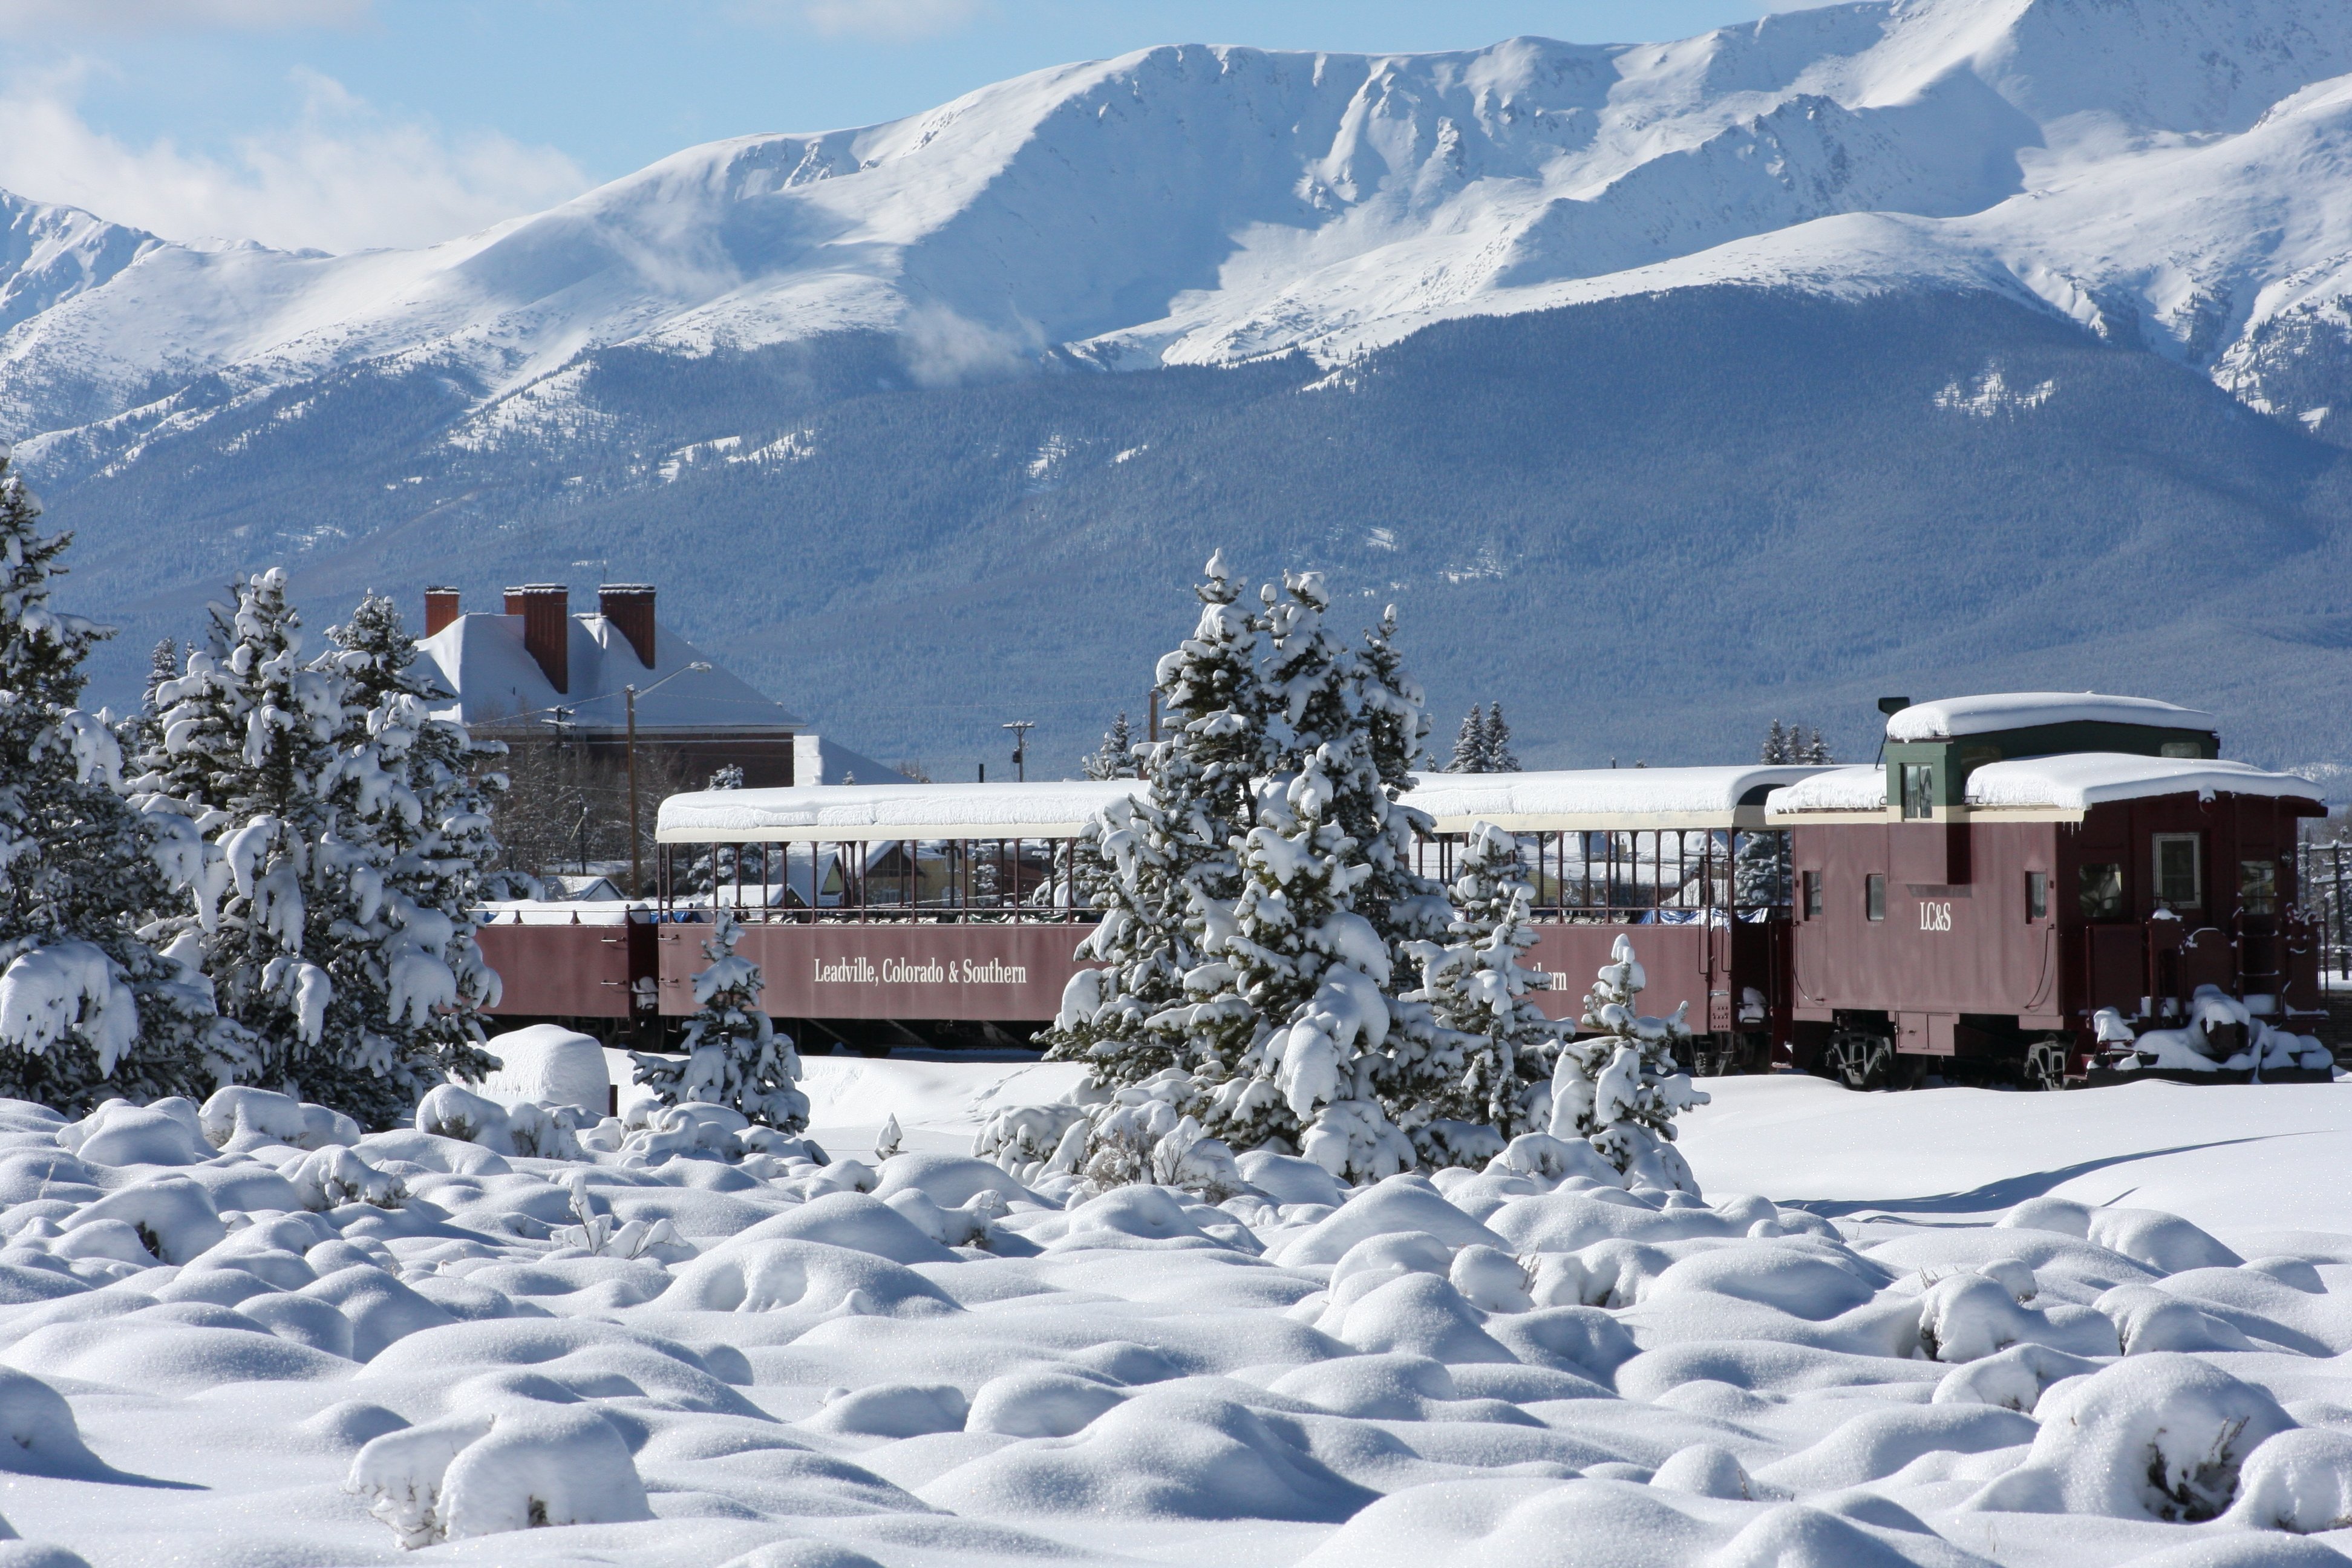 Christmas In Colorado Mountains.8 Best Christmas Towns Around Denver 2016